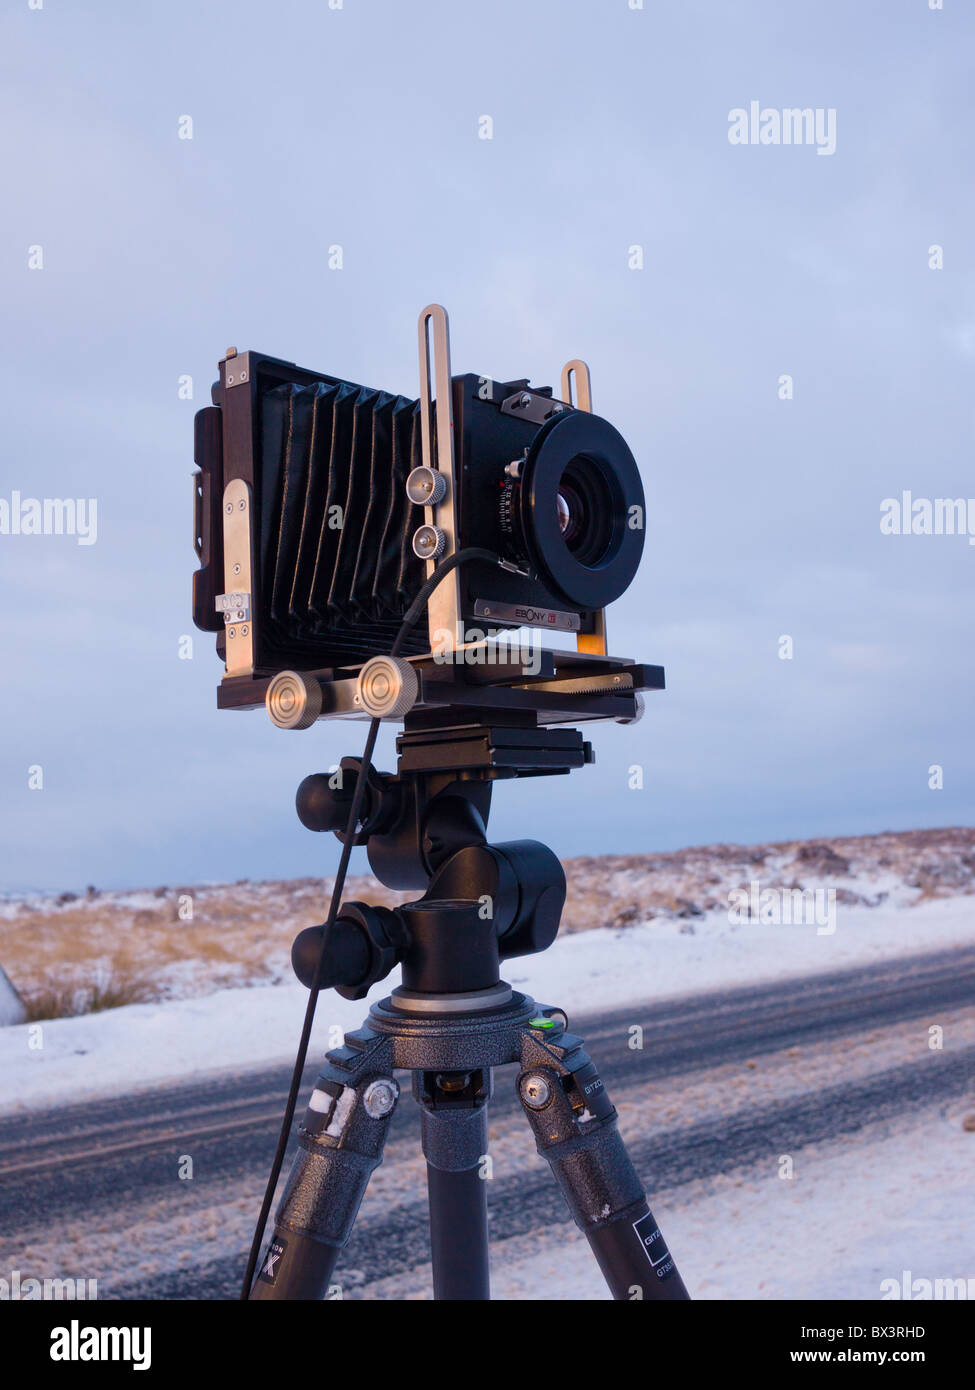 An Ebony RSW45 4x5 inch large format Field Camera being used to photograph a winter landscape. - Stock Image